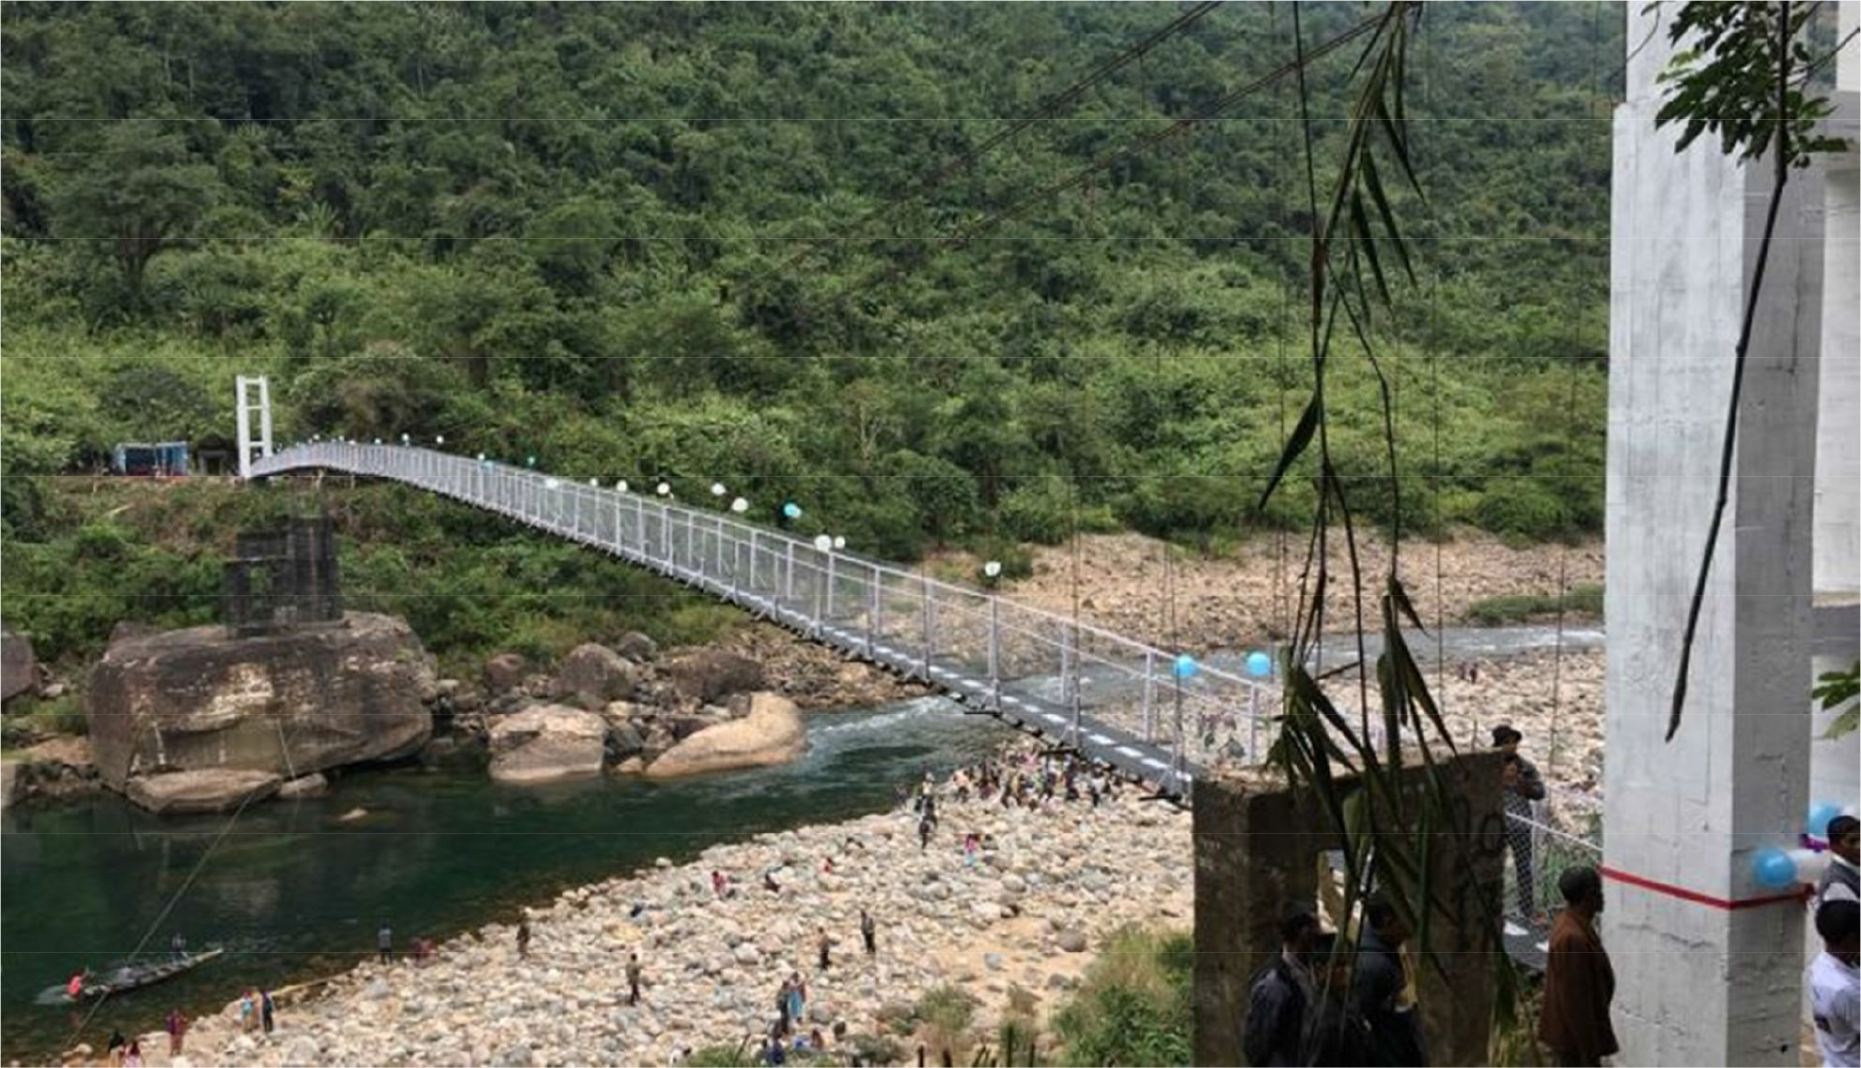 140 meter suspension bridge